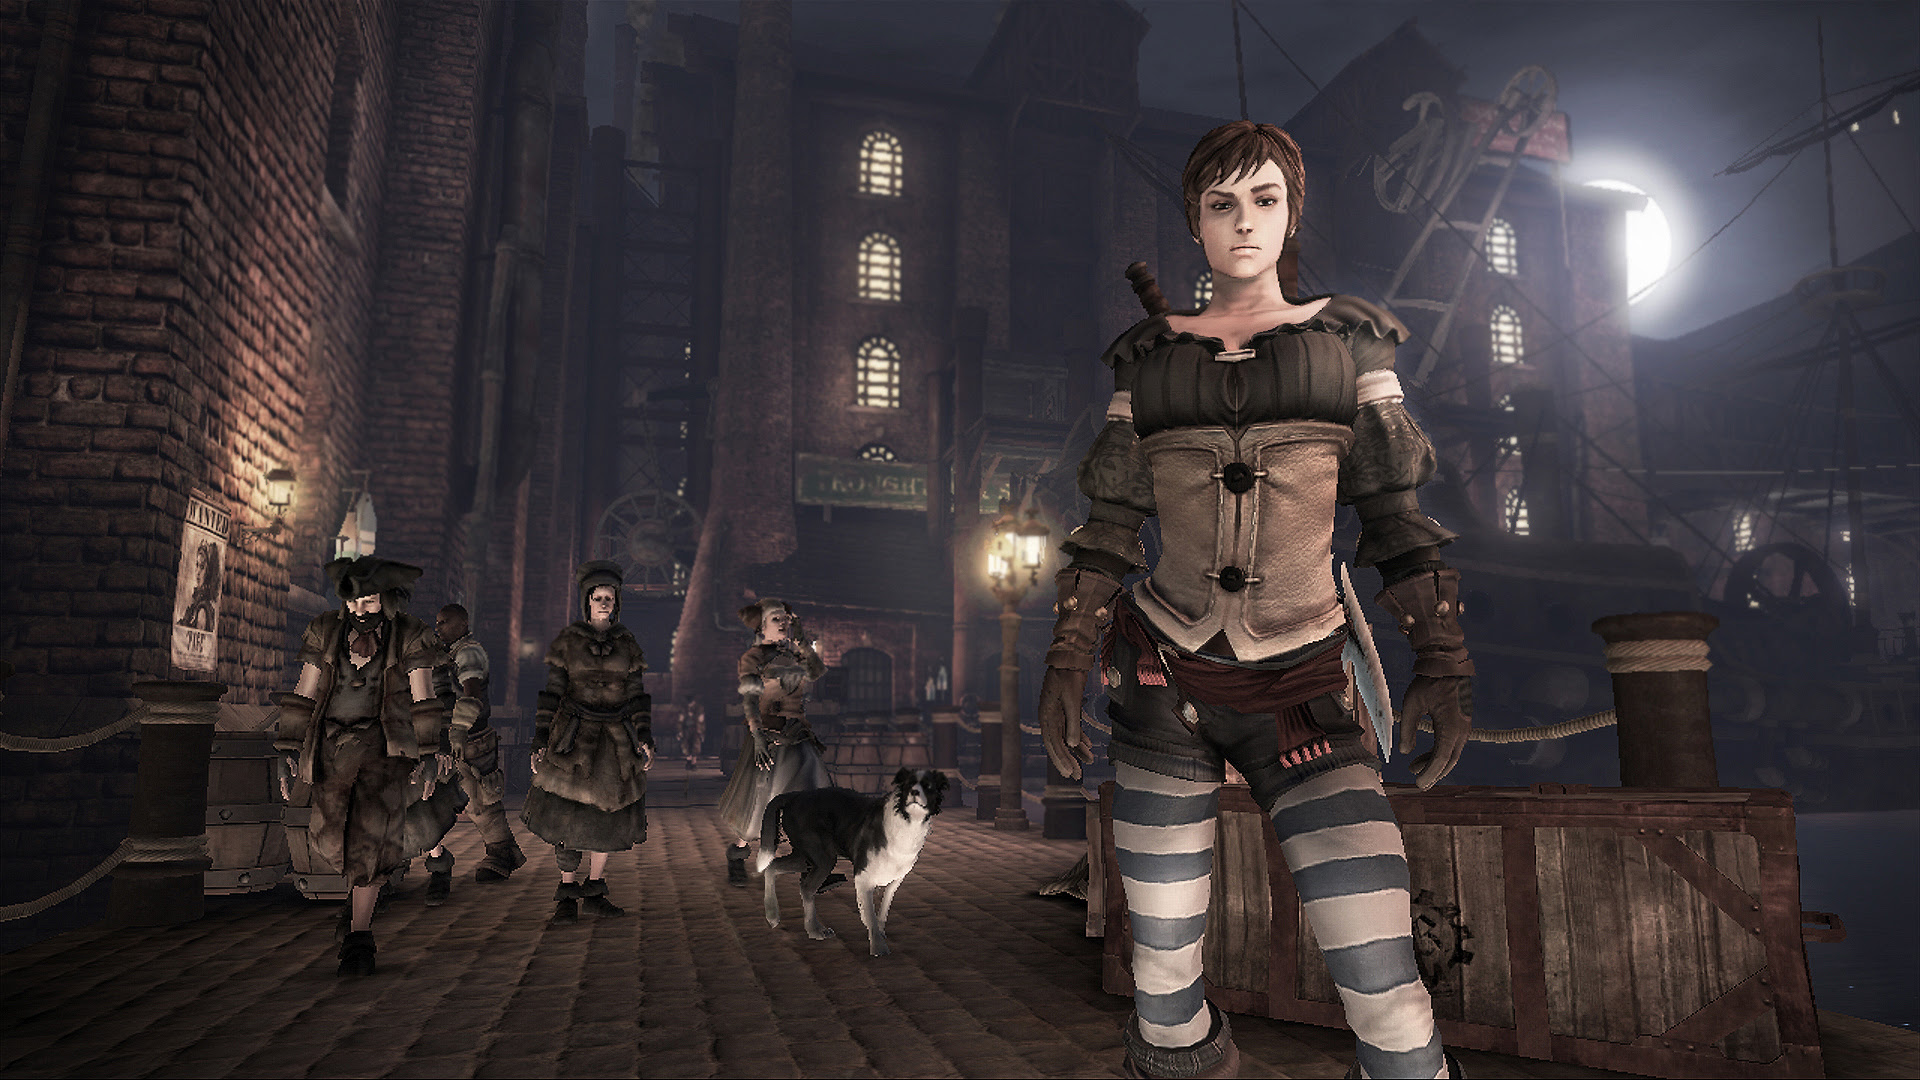 FREE MOVIES DOWNLOAD Fable 3 PC RePack RG Games